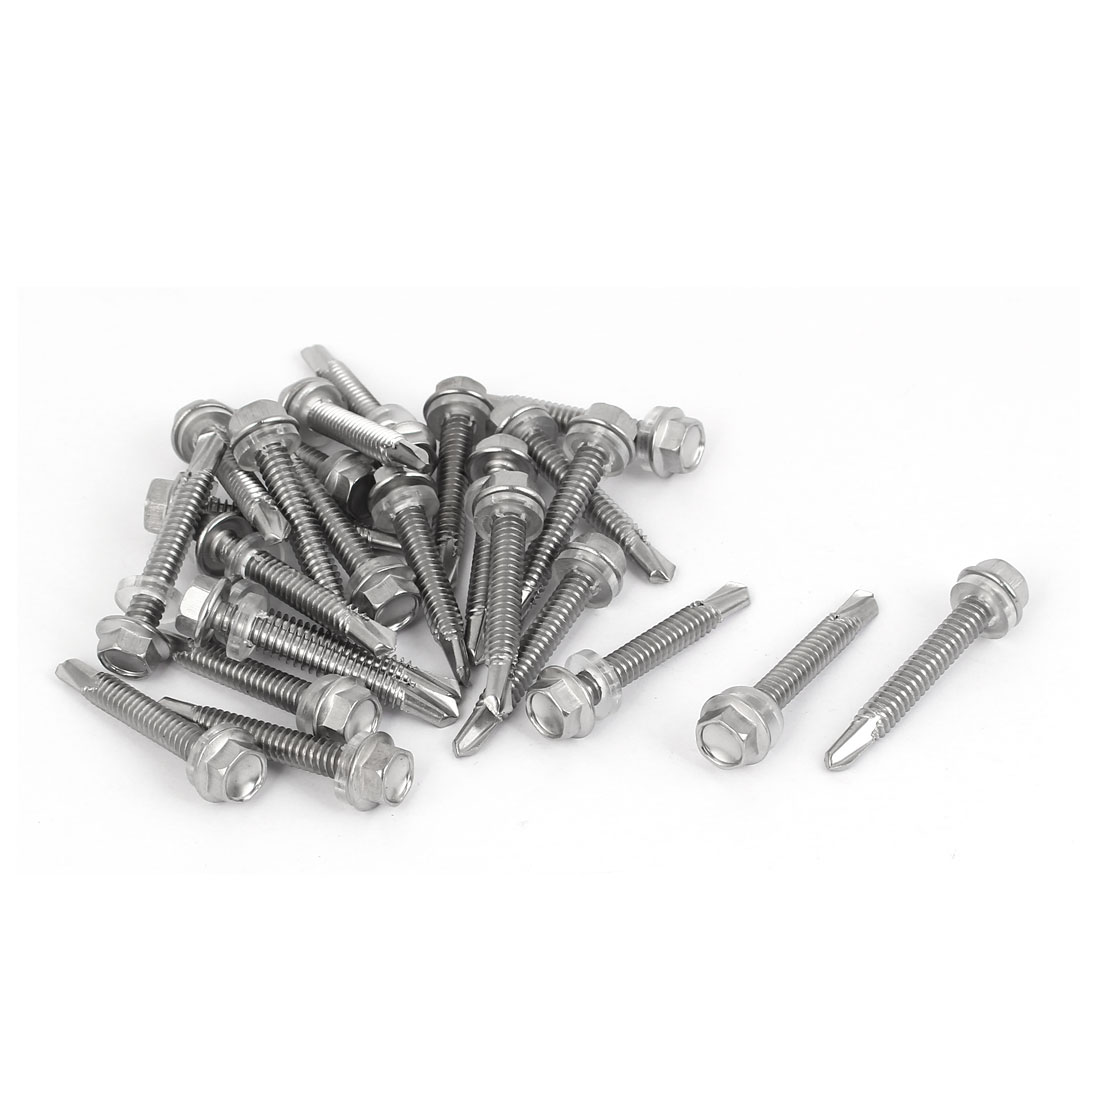 M5.5 x 38mm Male Thread Stainless Steel Self Drilling Tek Screw w Washer 25 Pcs